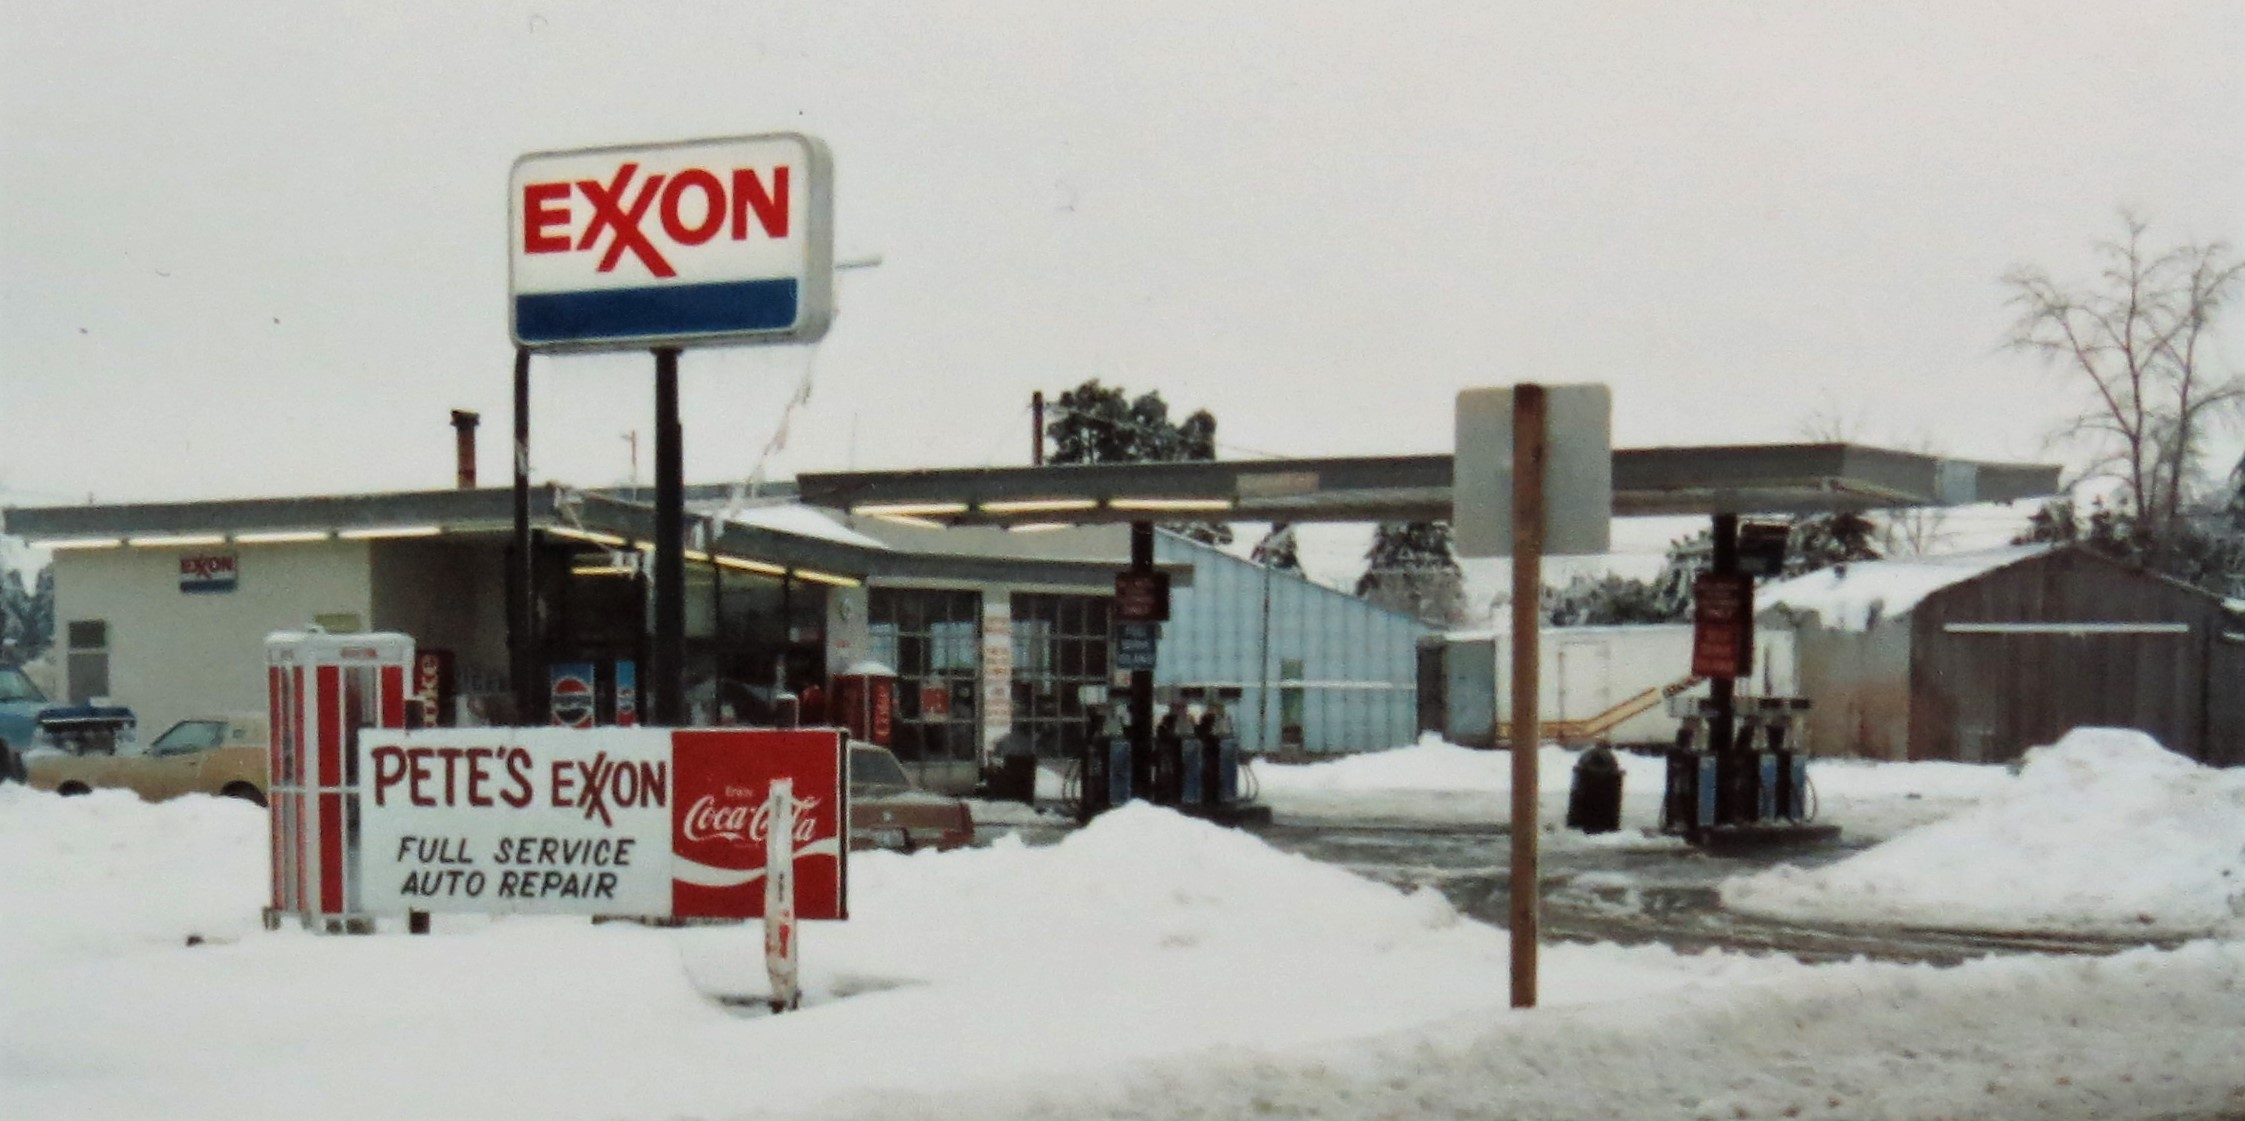 Pete's Exxon service station in the middle of a snowstorm much like the one Pete Harksell, Sr. experienced when taking over the station on January 1, 1969. Photo courtesy of Pete, Jr. and Nita Harksell